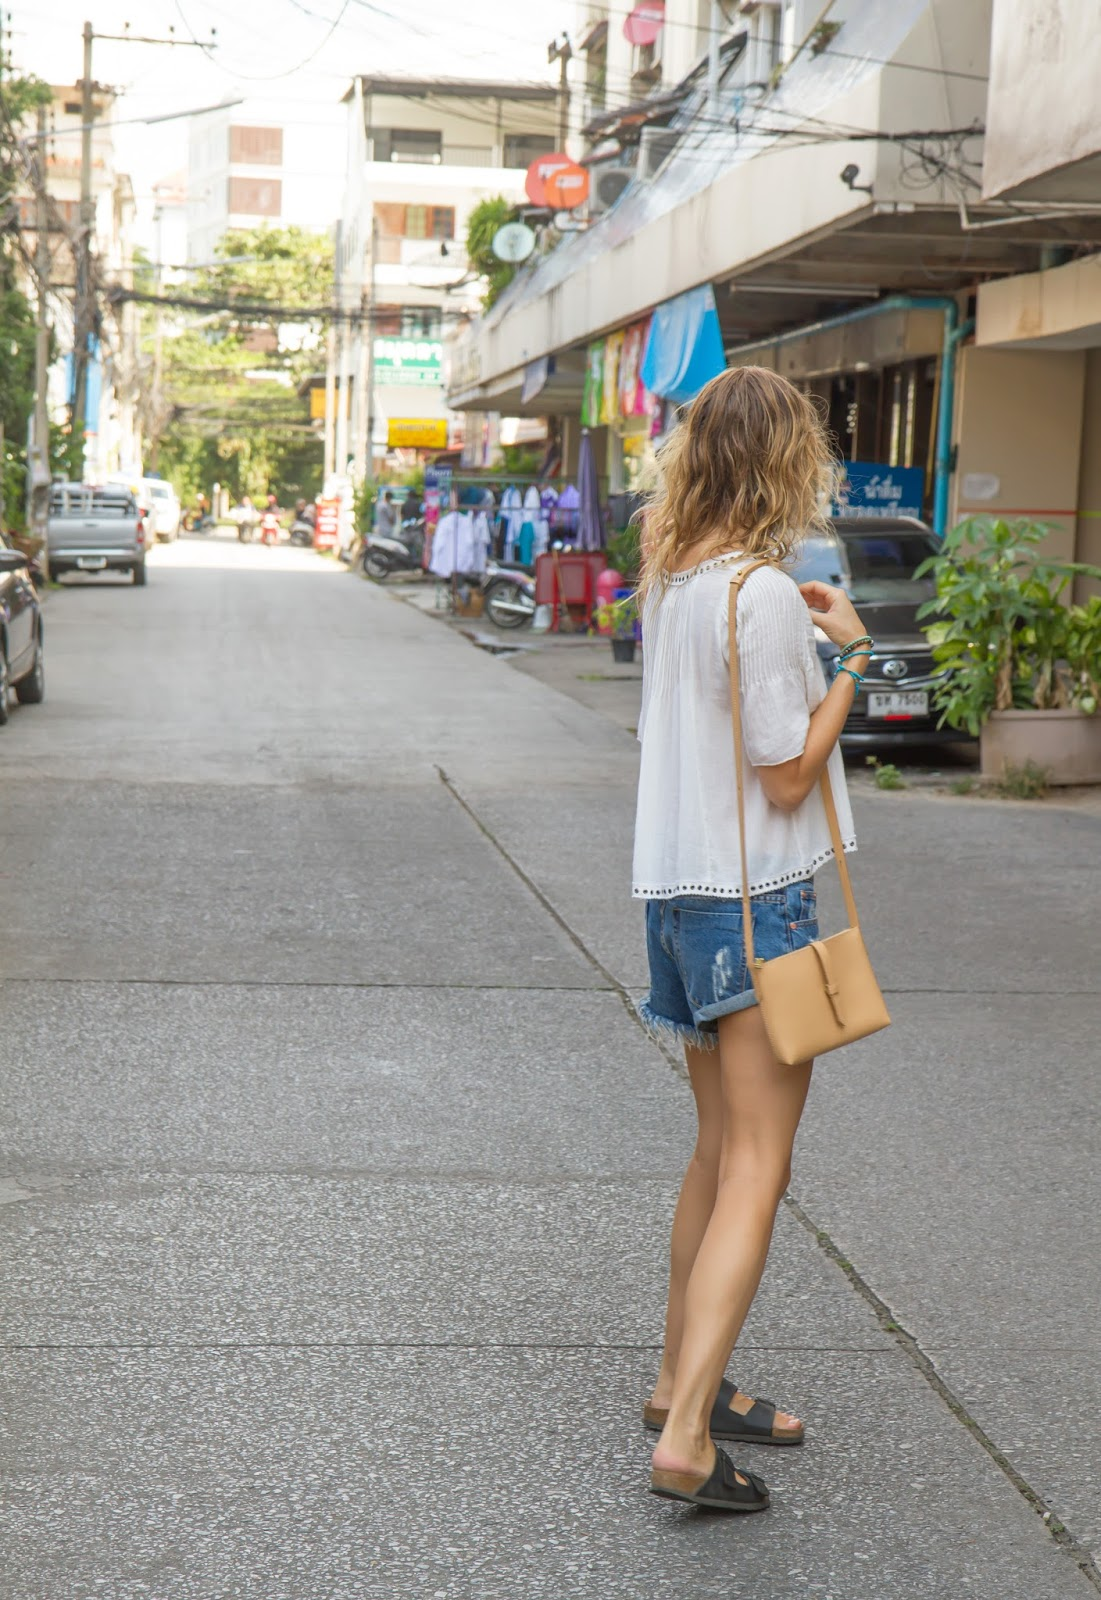 Fashion and travel blogger, Alison Hutchinson, is living as a digital nomad in Chiang Mai, Thailand. Wearing a Ralph Lauren top, One Teaspoon Shorts and birkenstock sandals